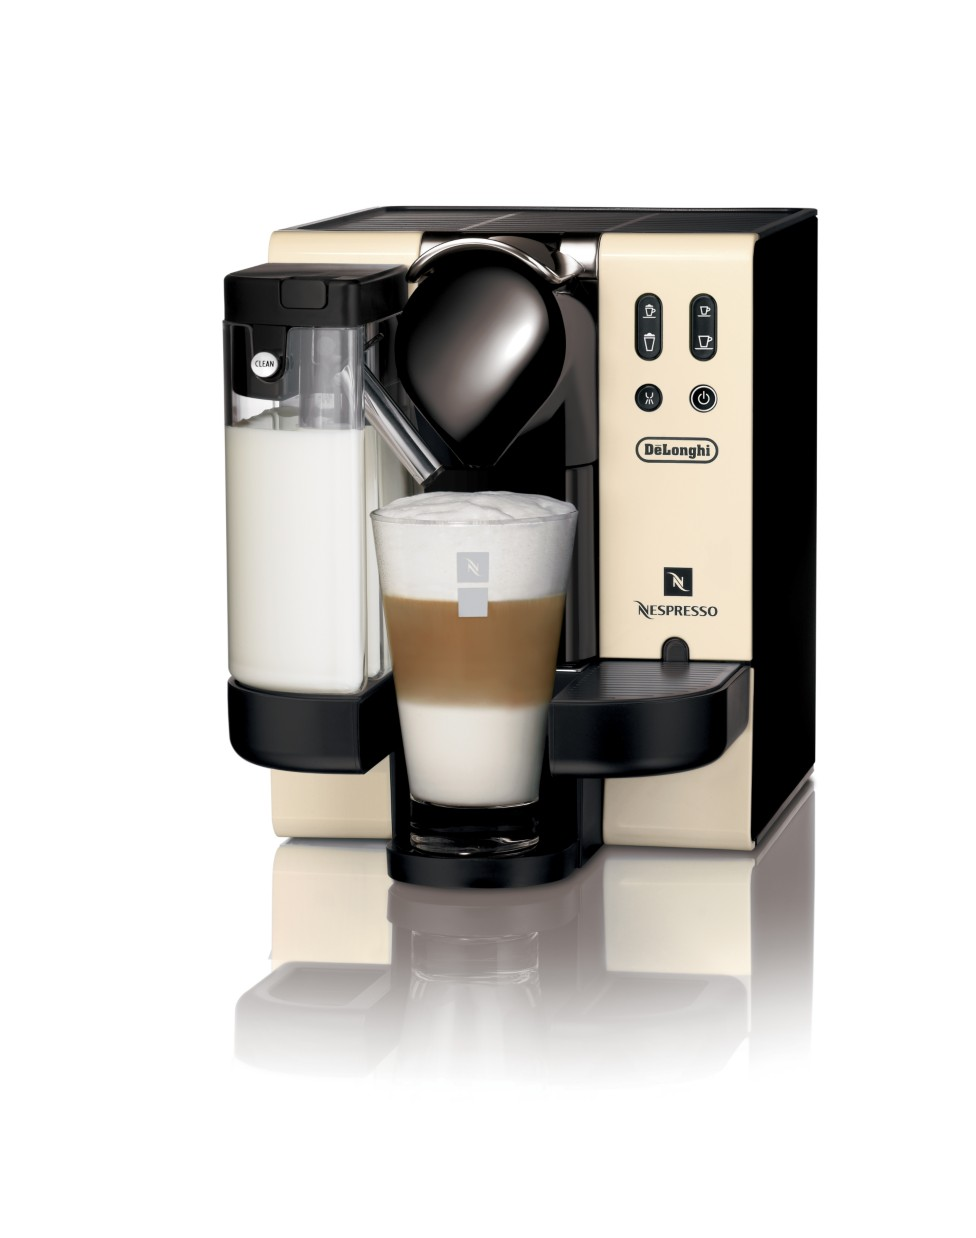 Delonghi Coffee Maker Sainsburys : Delonghi EN660 Nespresso cream Coffee Maker - review, compare prices, buy online